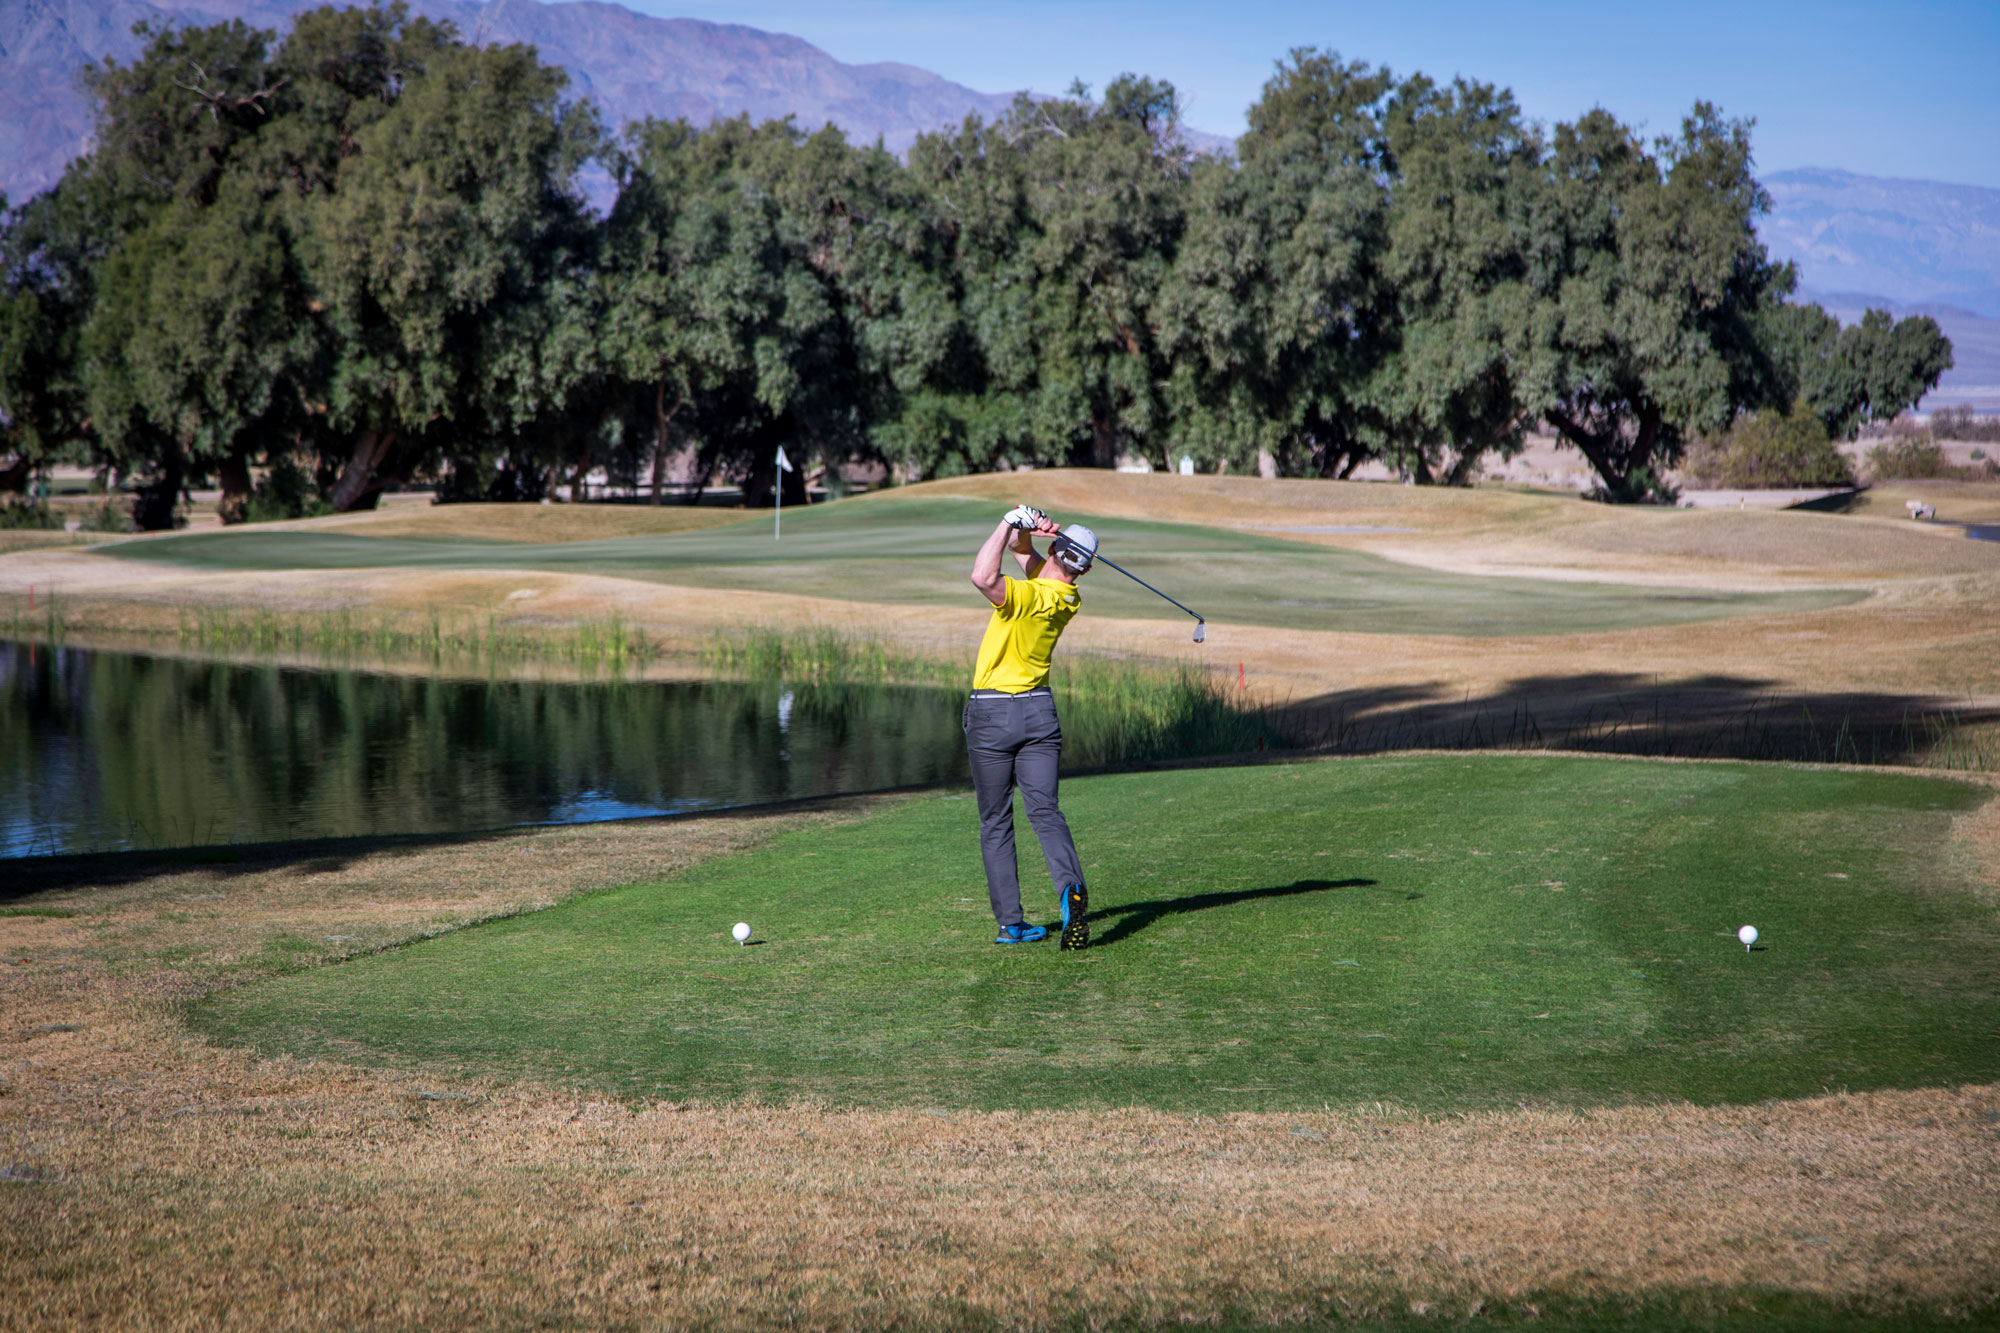 A man swings his club on a golf course.